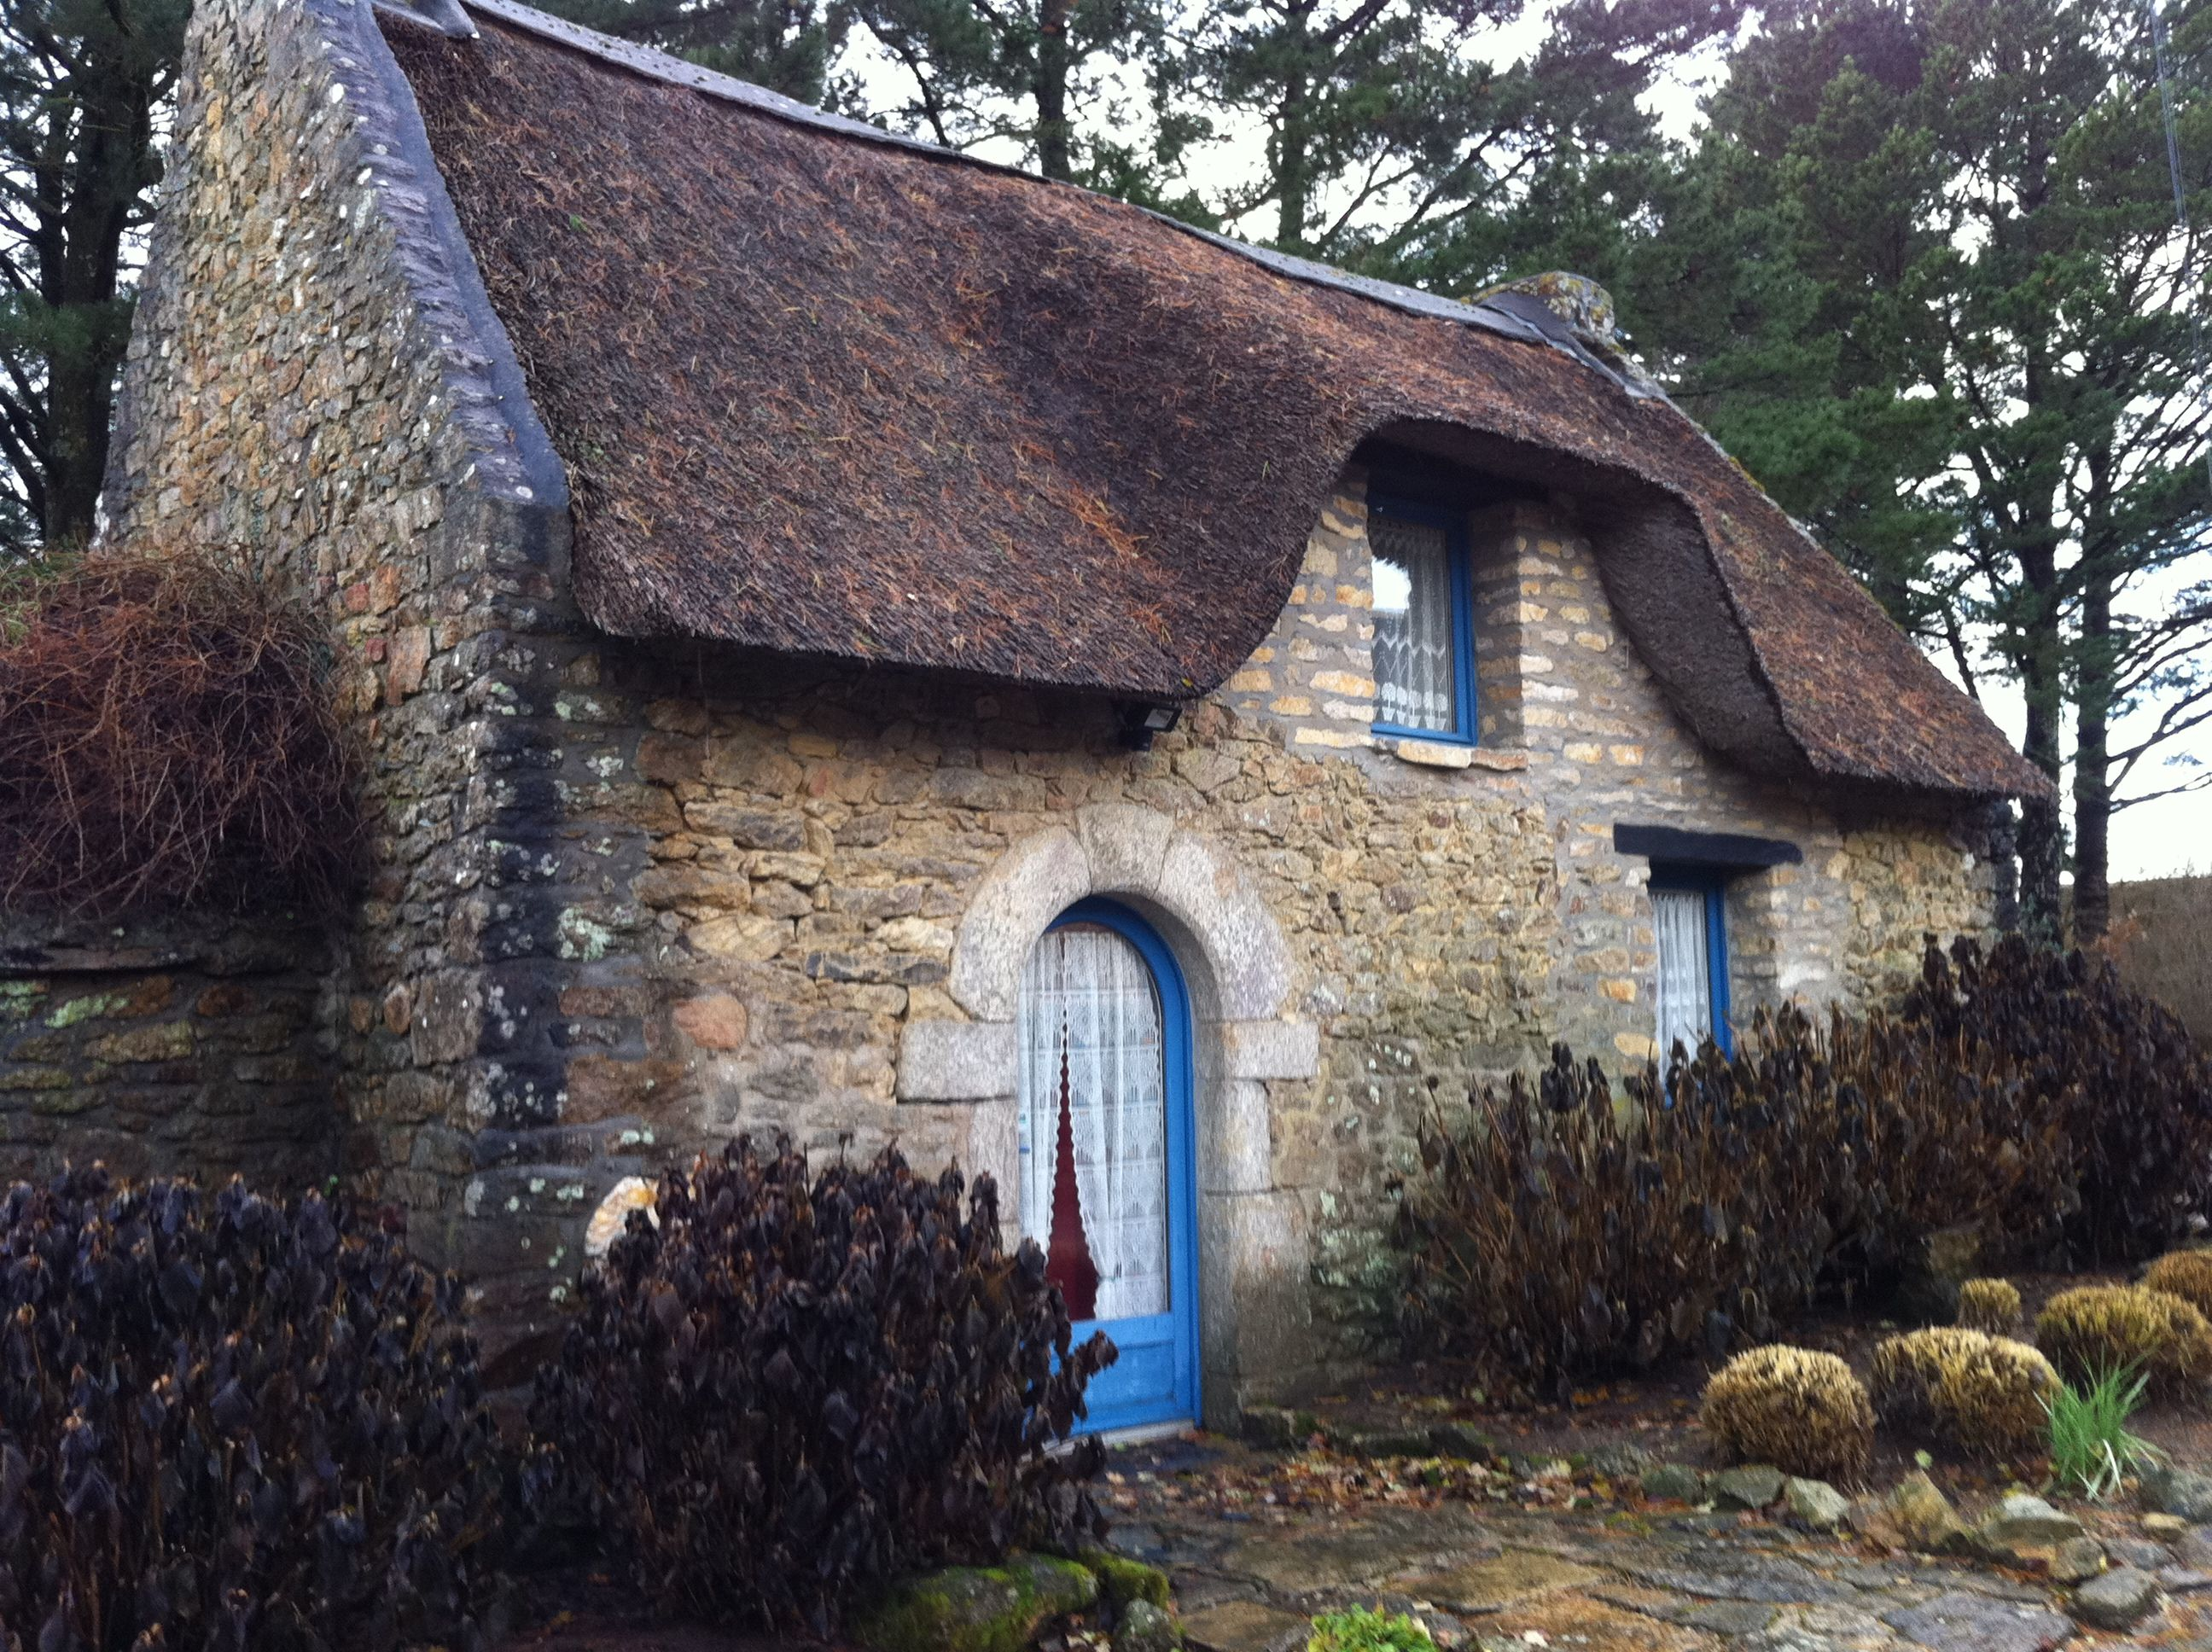 Thatched Roof Cottage France Thatched Cottage Cottage Thatched Roof